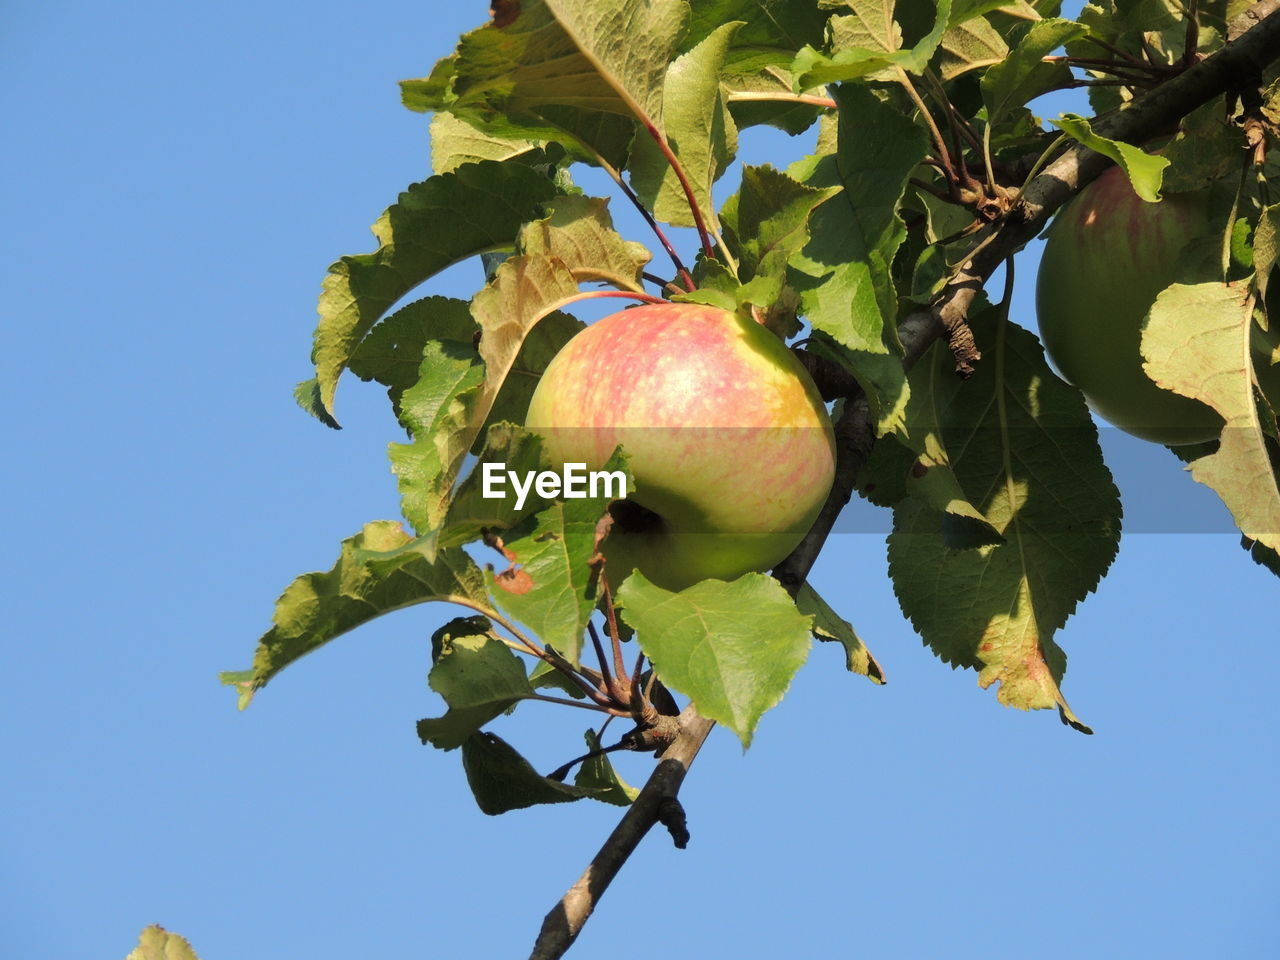 fruit, healthy eating, food, food and drink, plant, wellbeing, growth, freshness, apple - fruit, sky, leaf, nature, tree, apple tree, plant part, no people, day, fruit tree, close-up, low angle view, outdoors, ripe, apple